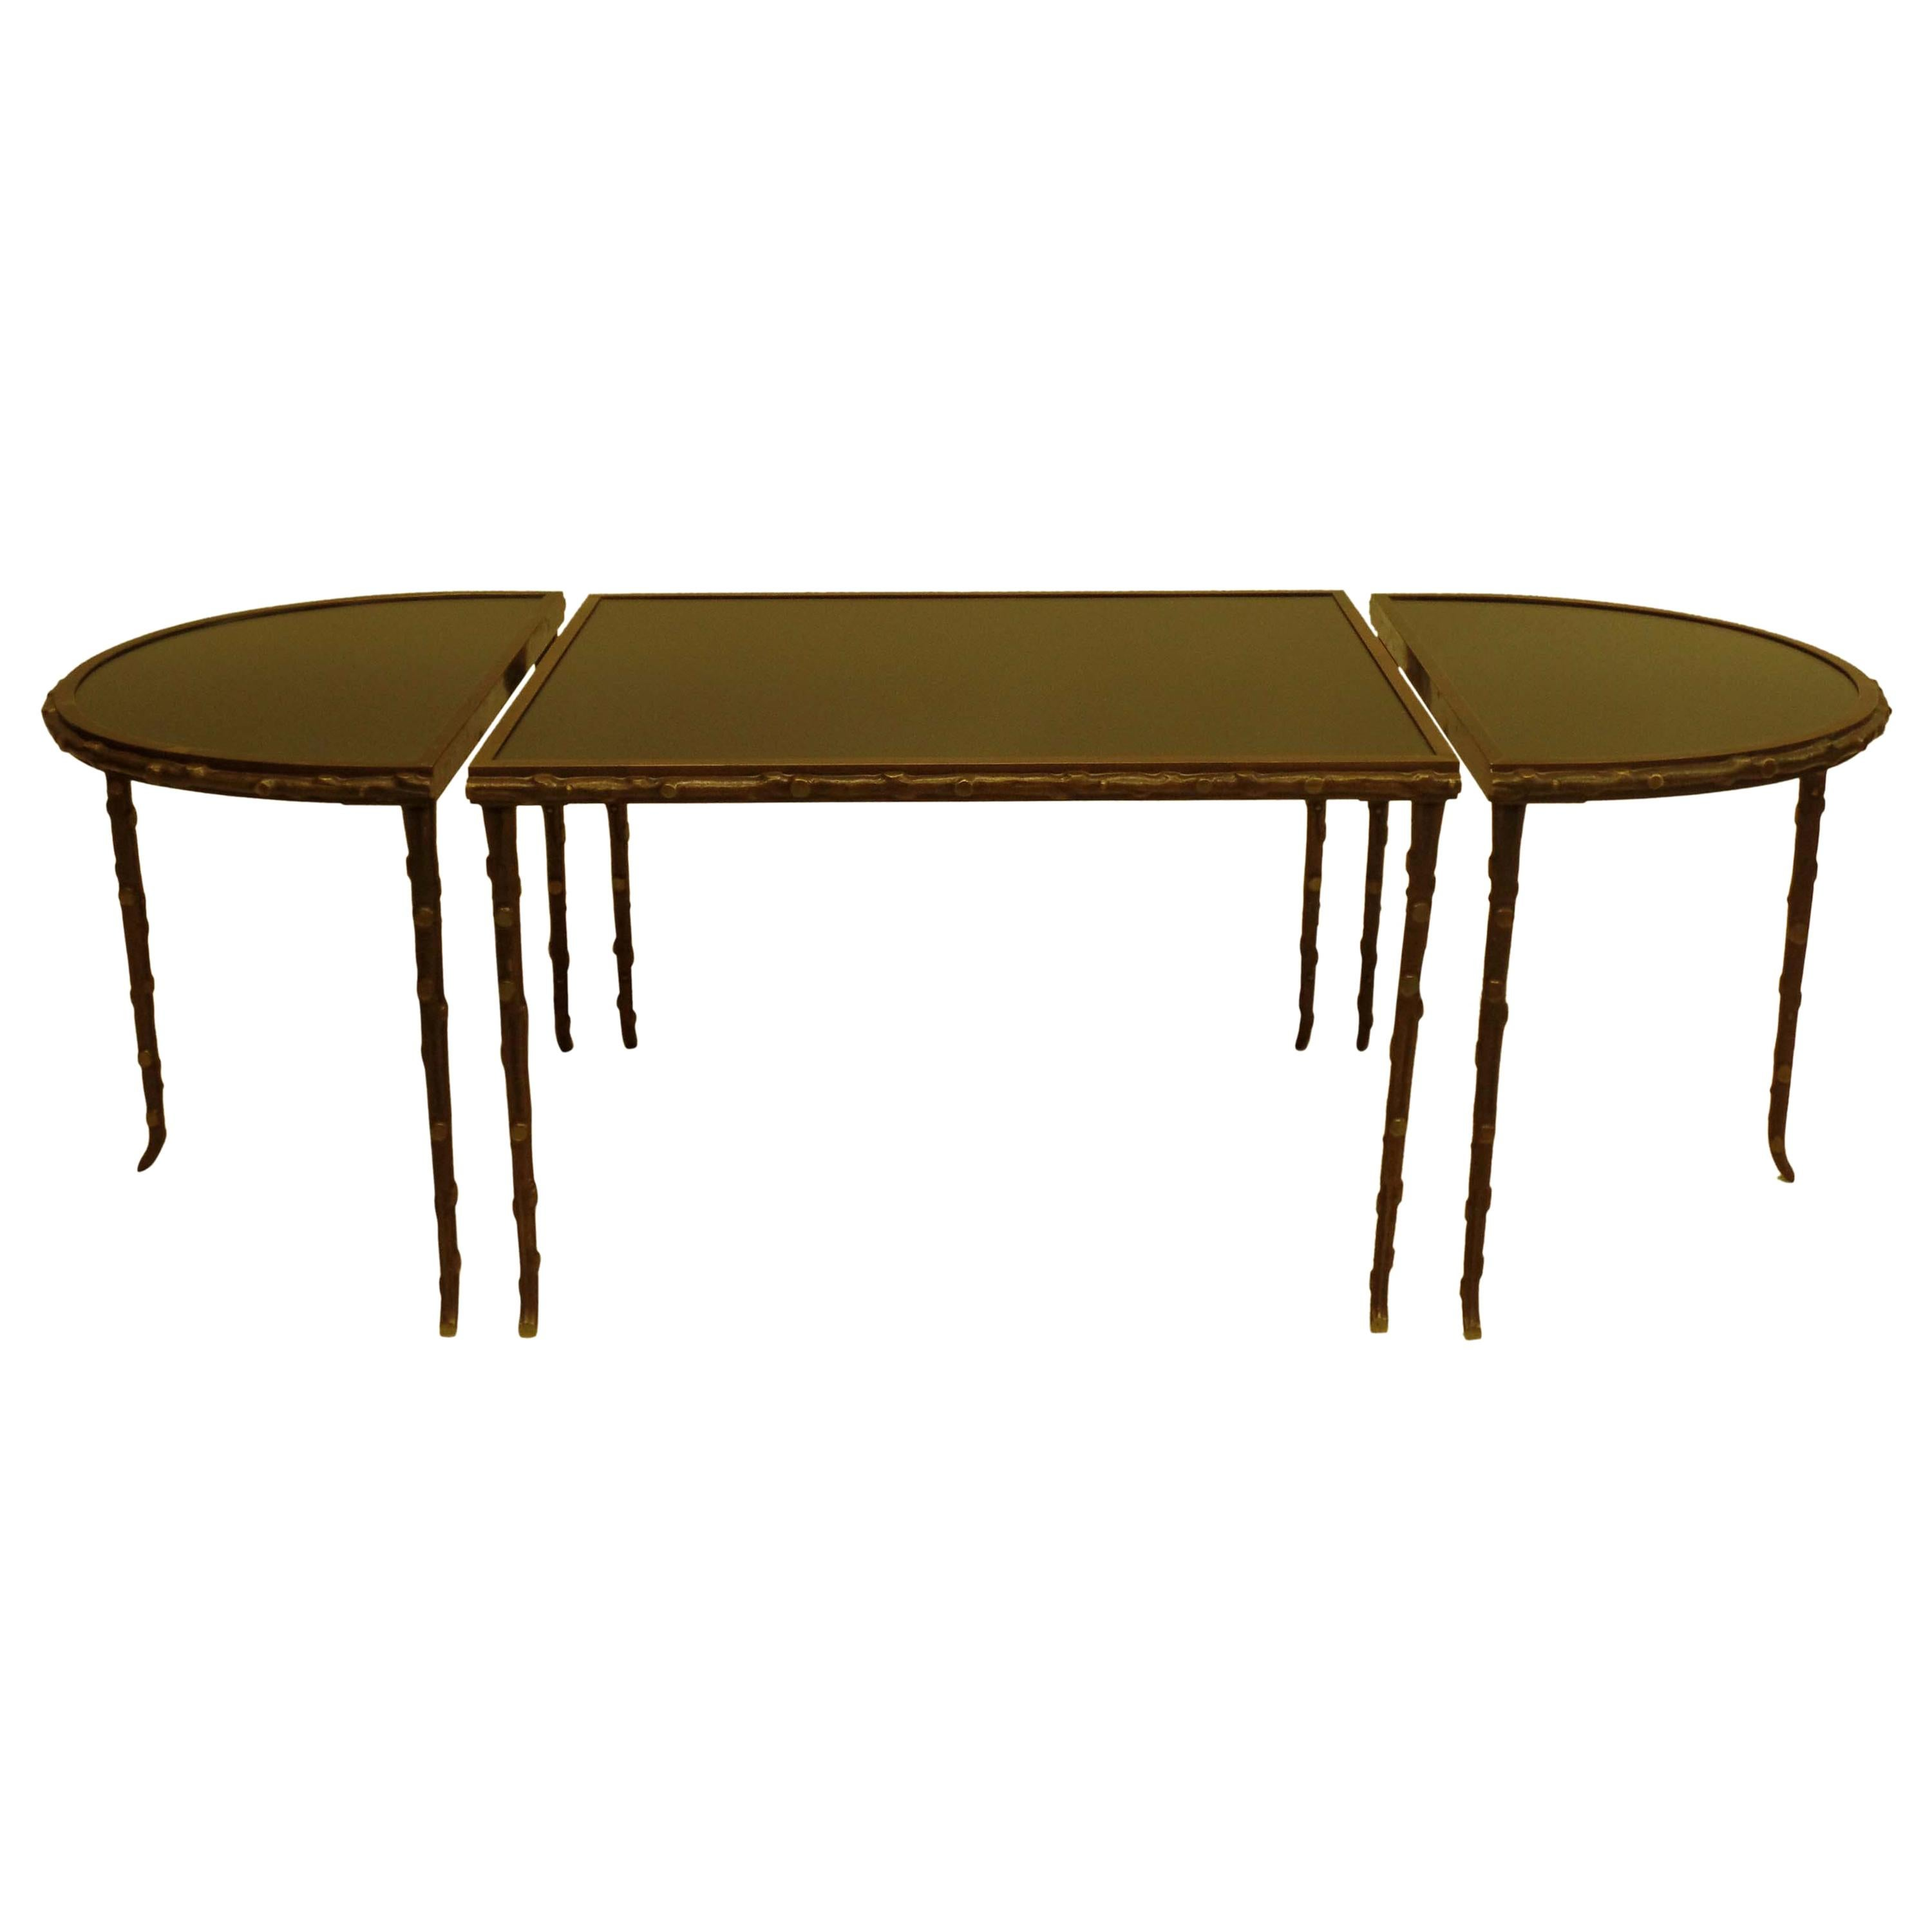 French Midcentury Gilt Bronze Faux Bamboo 3 Part Coffee Table by Maison Baguès